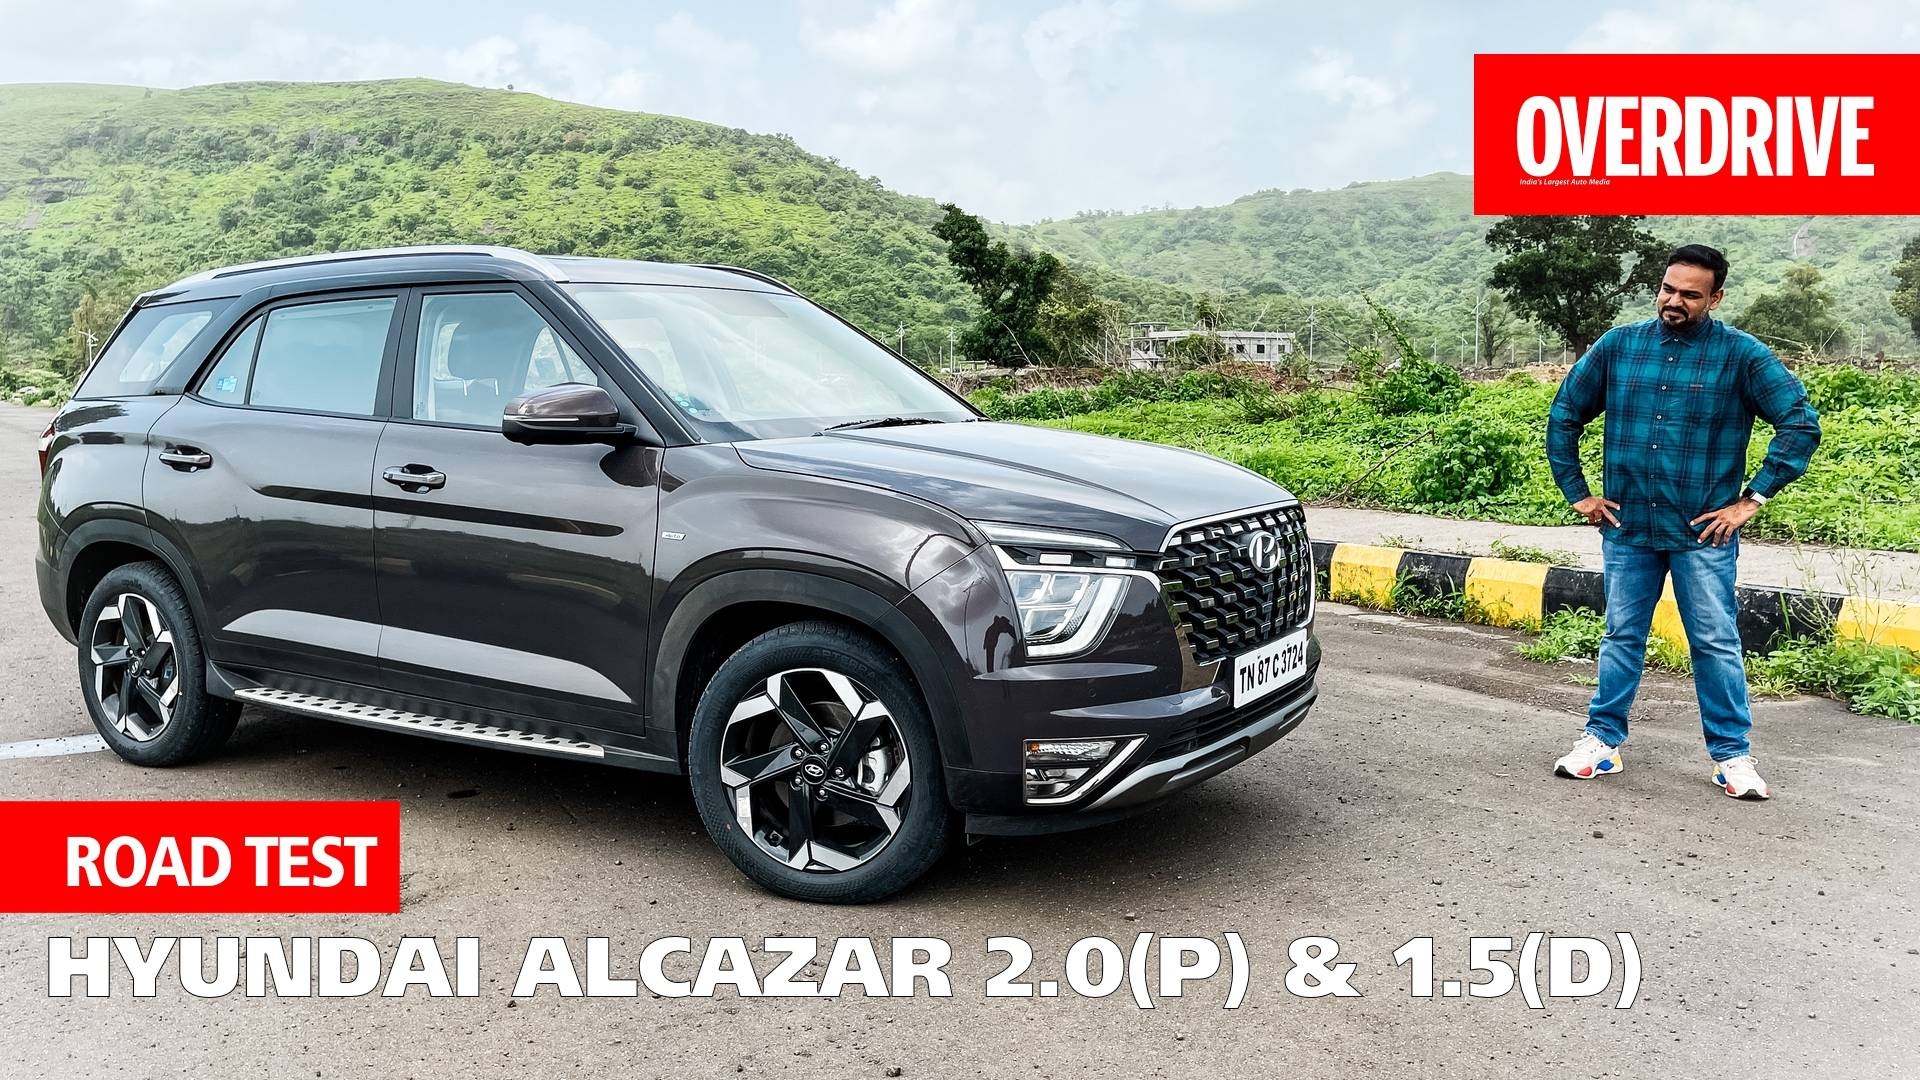 Hyundai Alcazar road test review - is it worth the asking price?